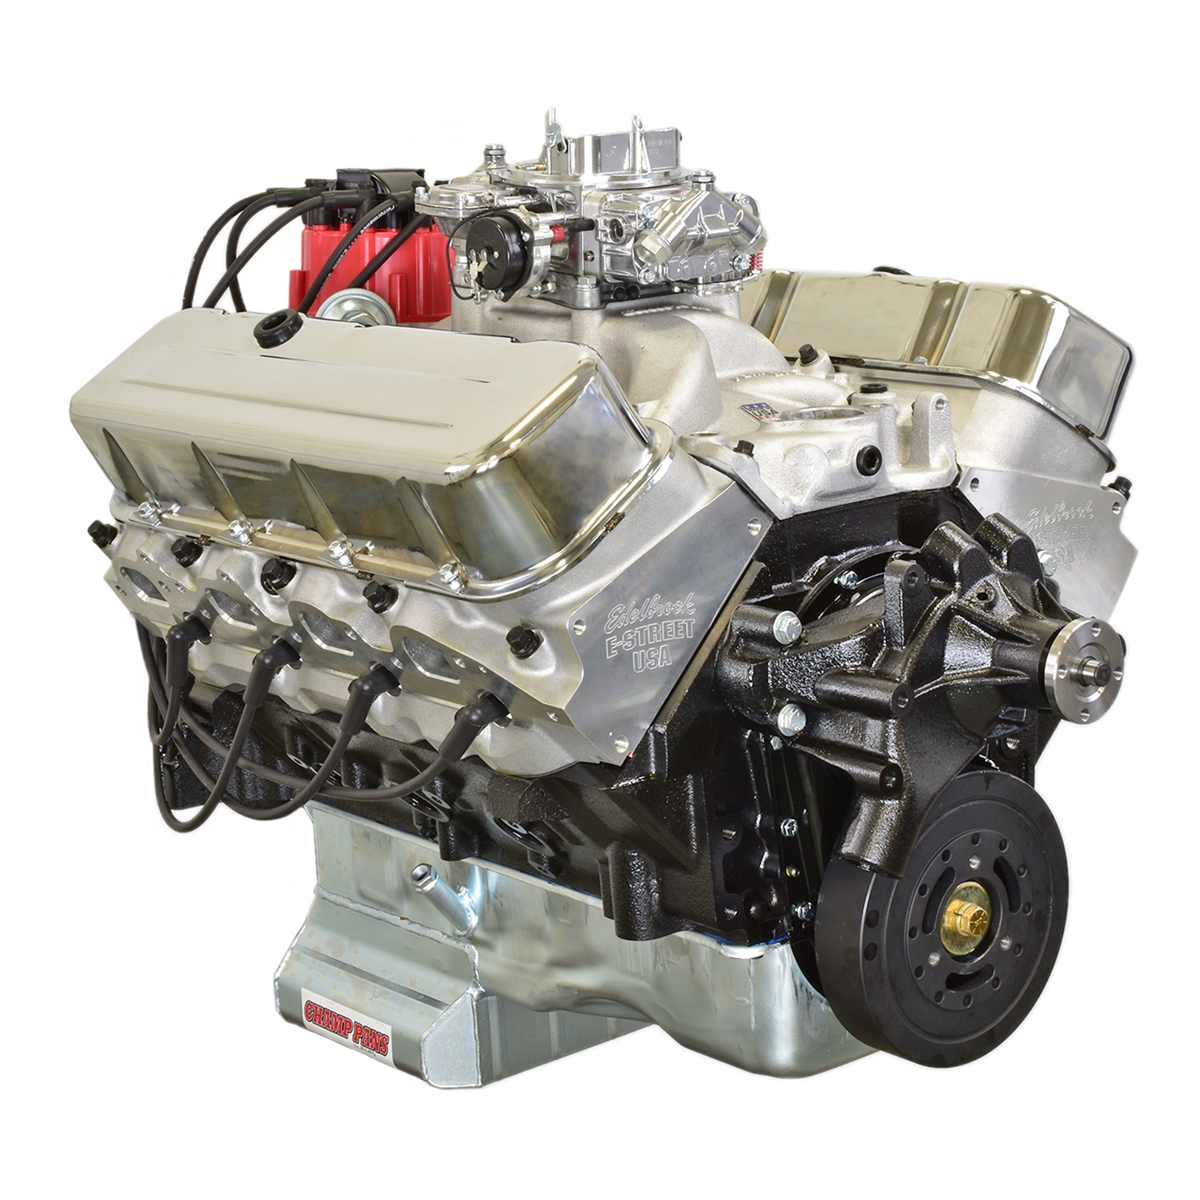 All Chevy 1995 chevy 454 specs : 454 Complete Engine 525HP